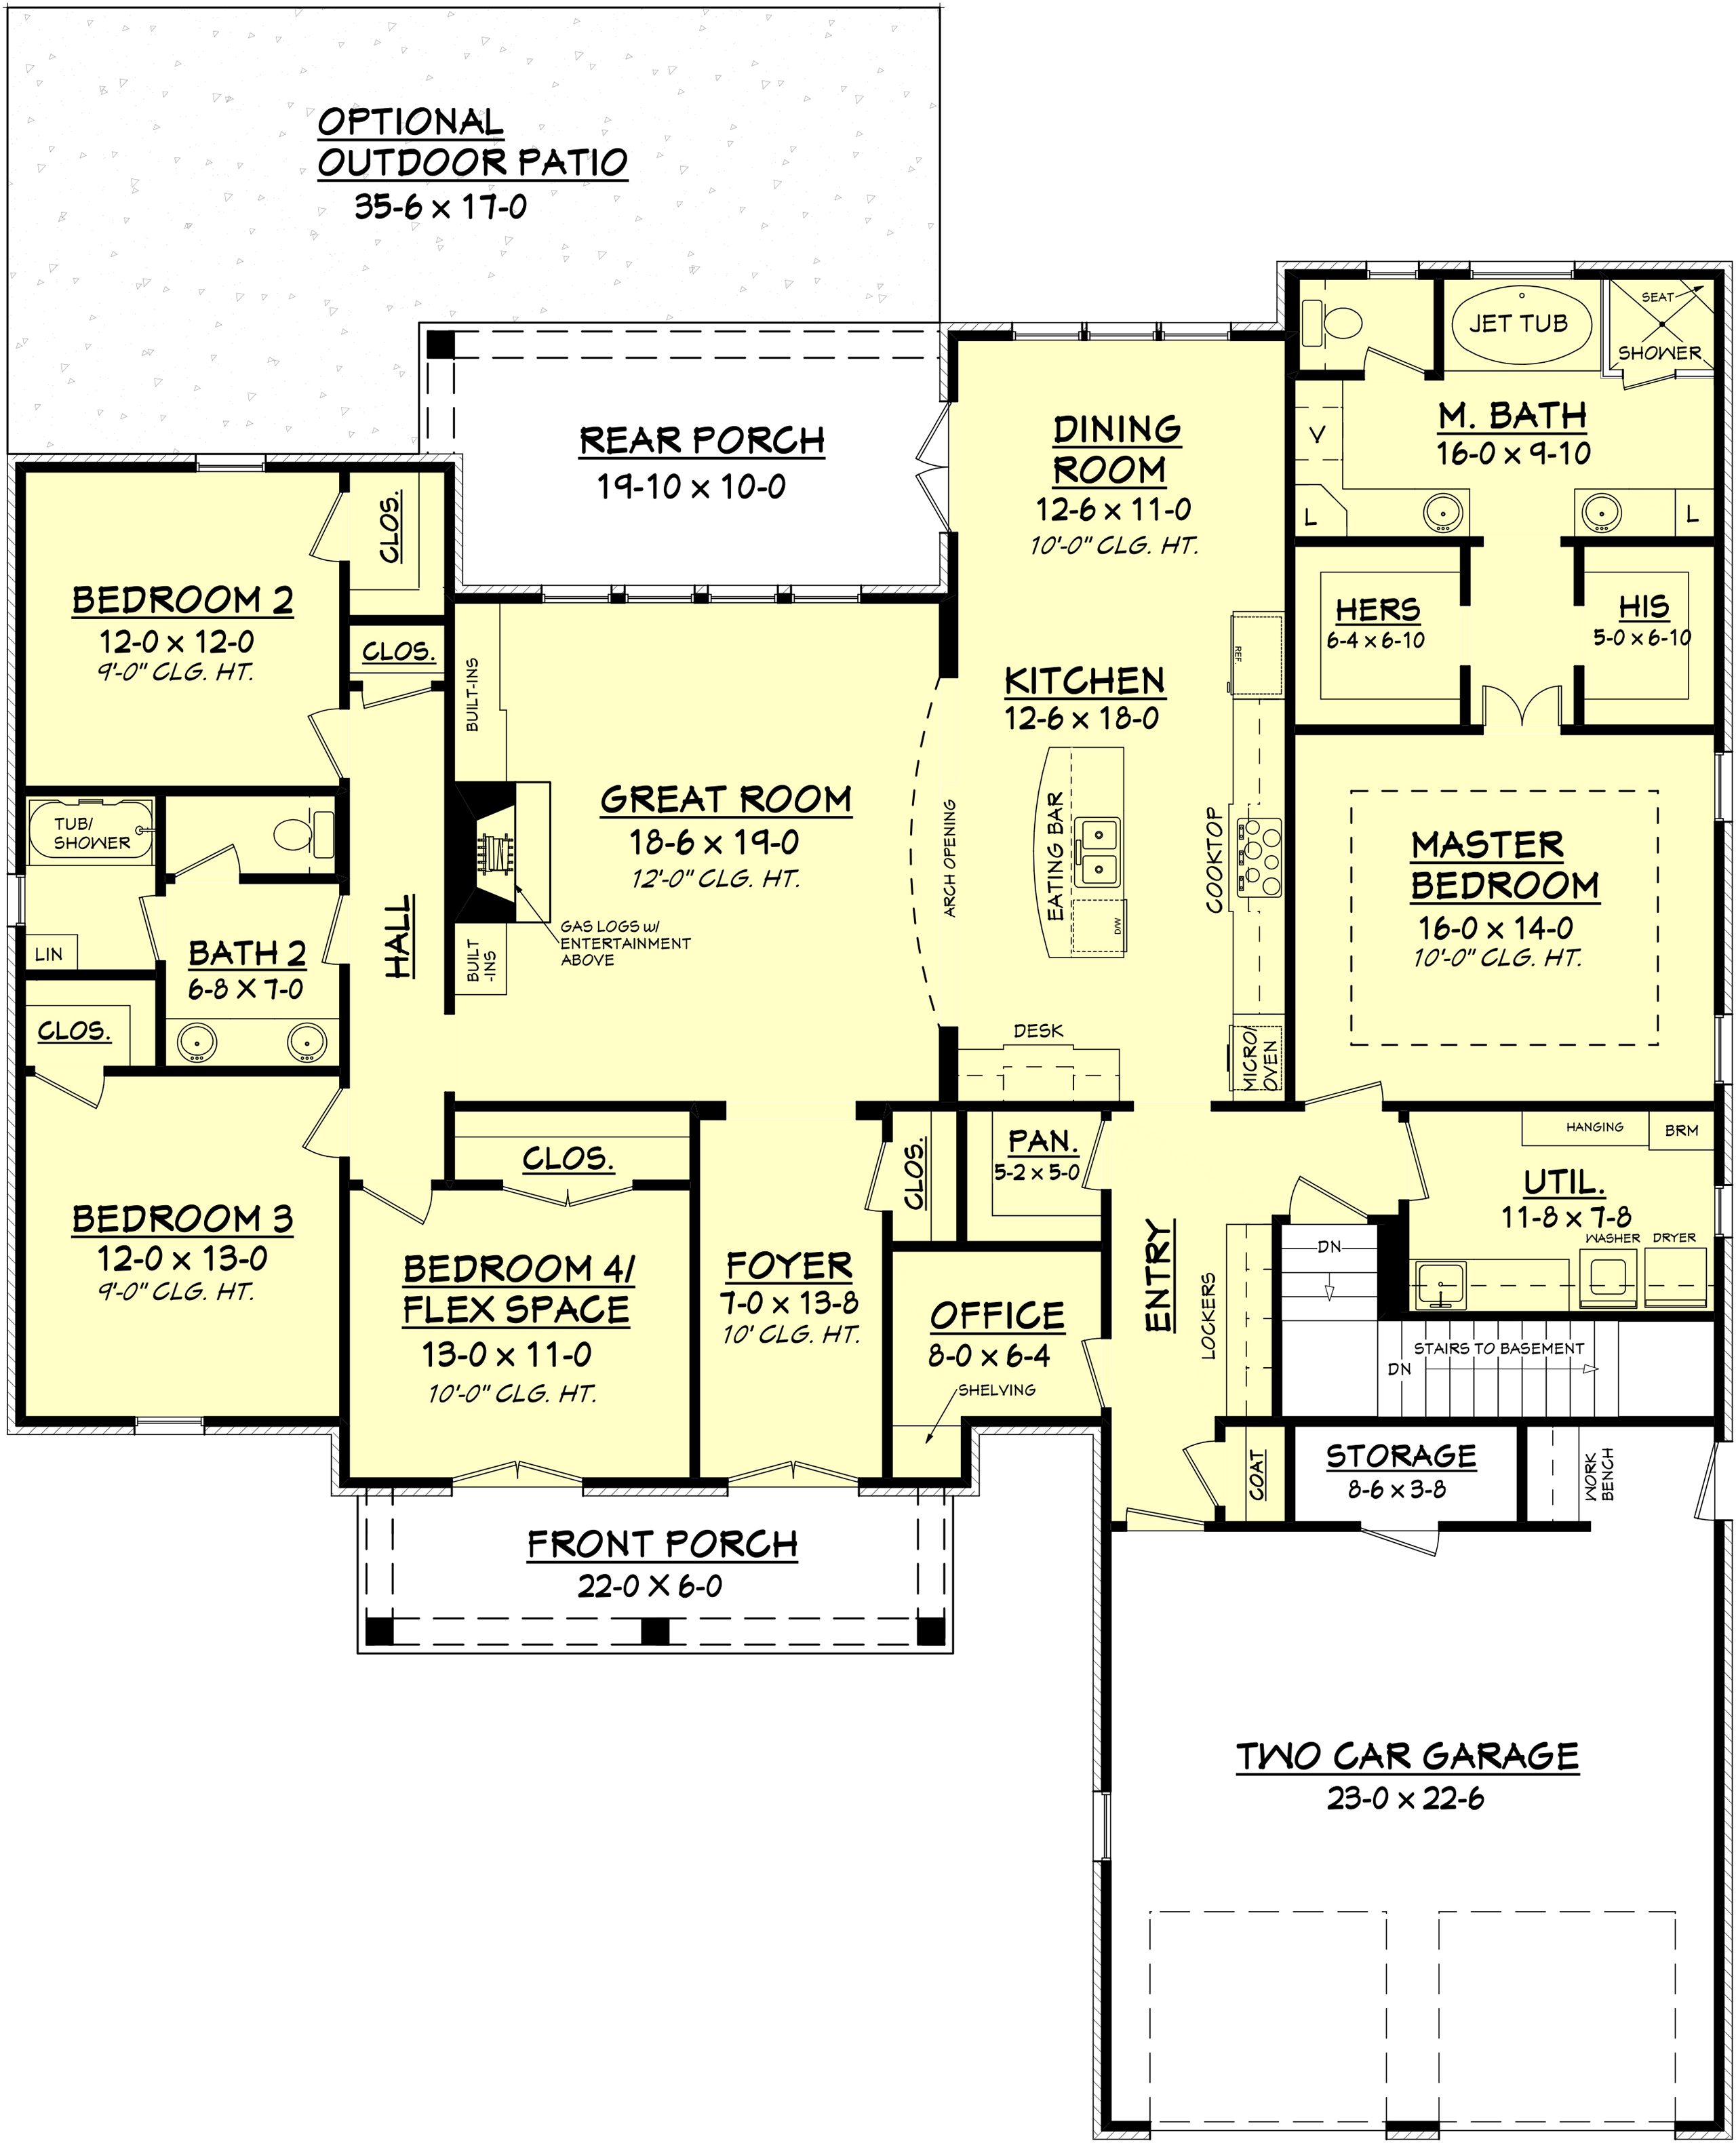 House plan 142 1100 4 bdrm 2 480 sq ft european home for 1100 square feet house plans